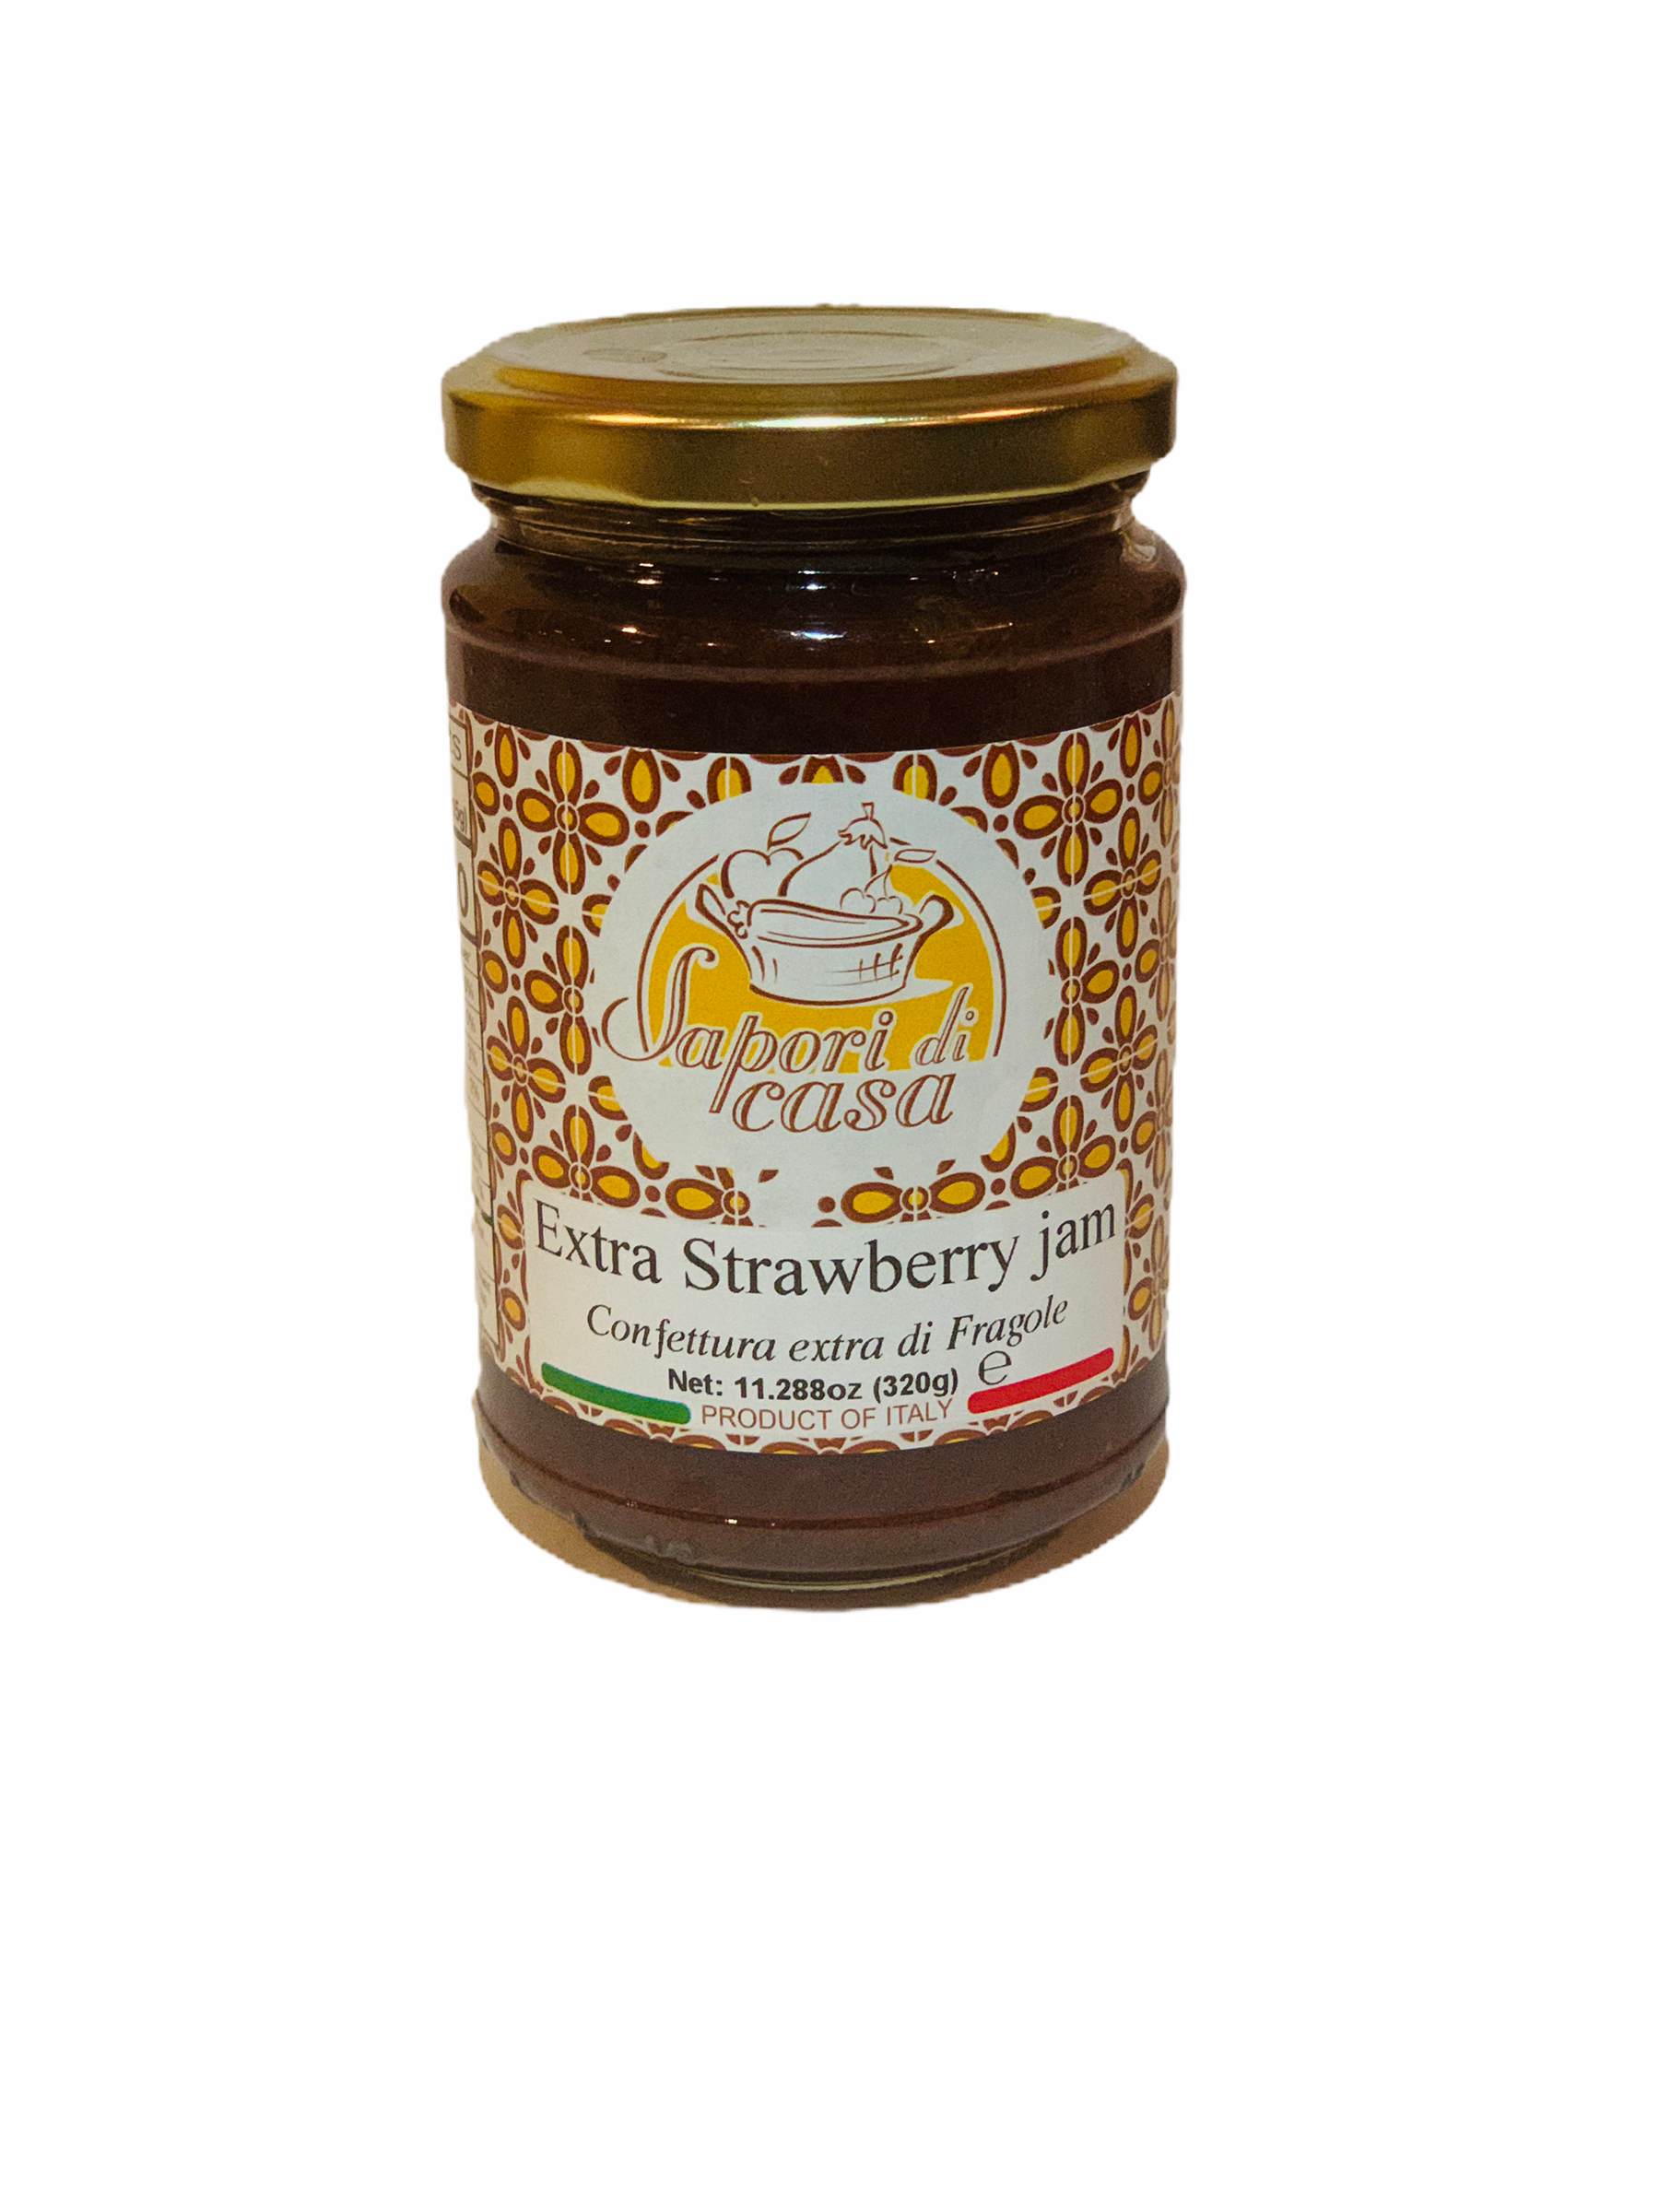 Extra Strawberry Jam, Sapori di Casa 320g